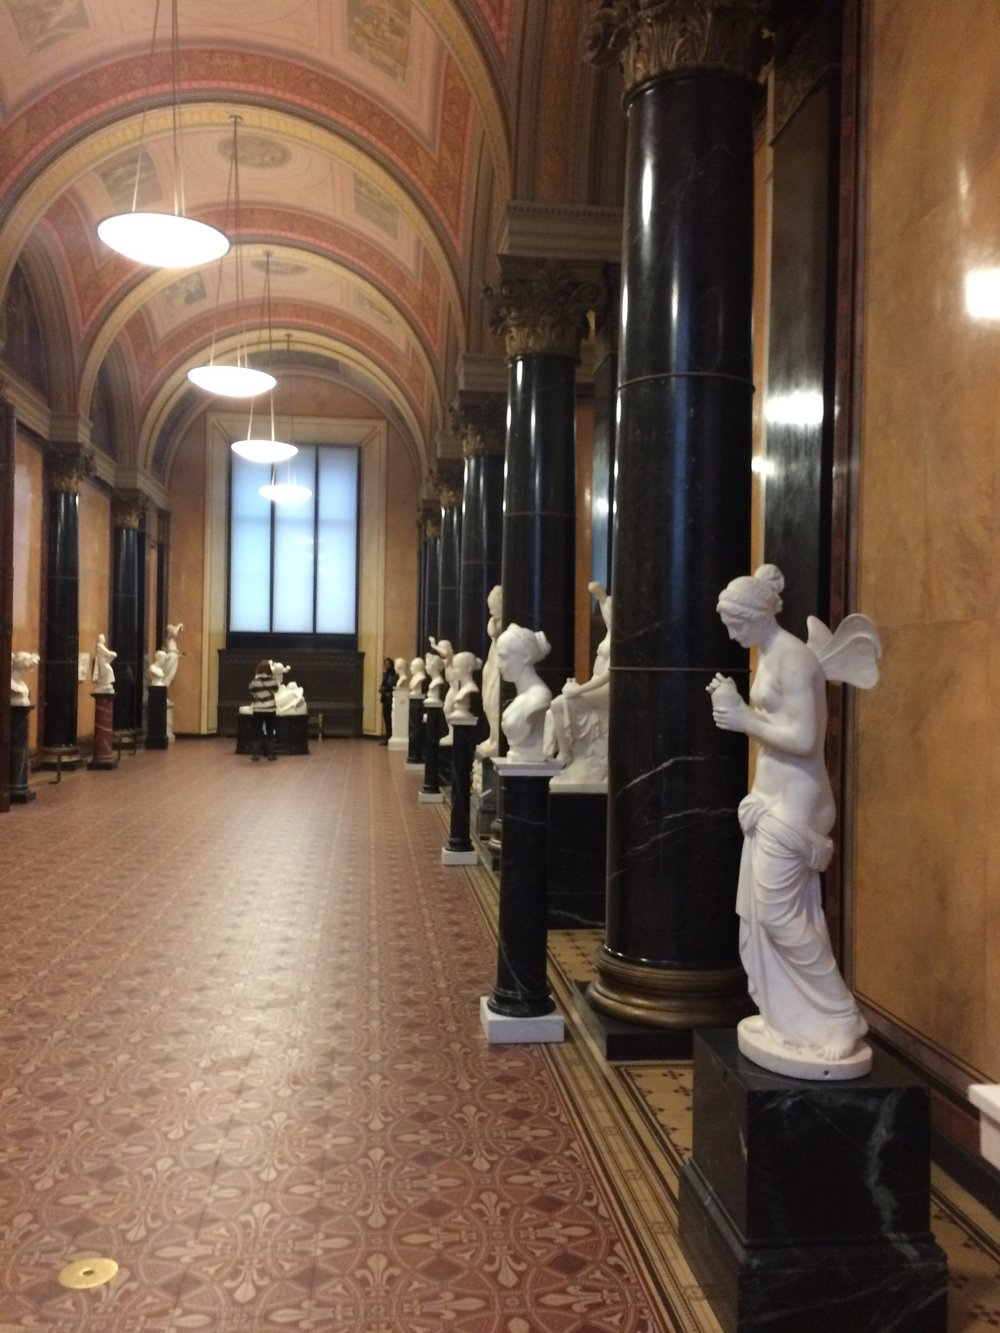 Sculptures in Alte